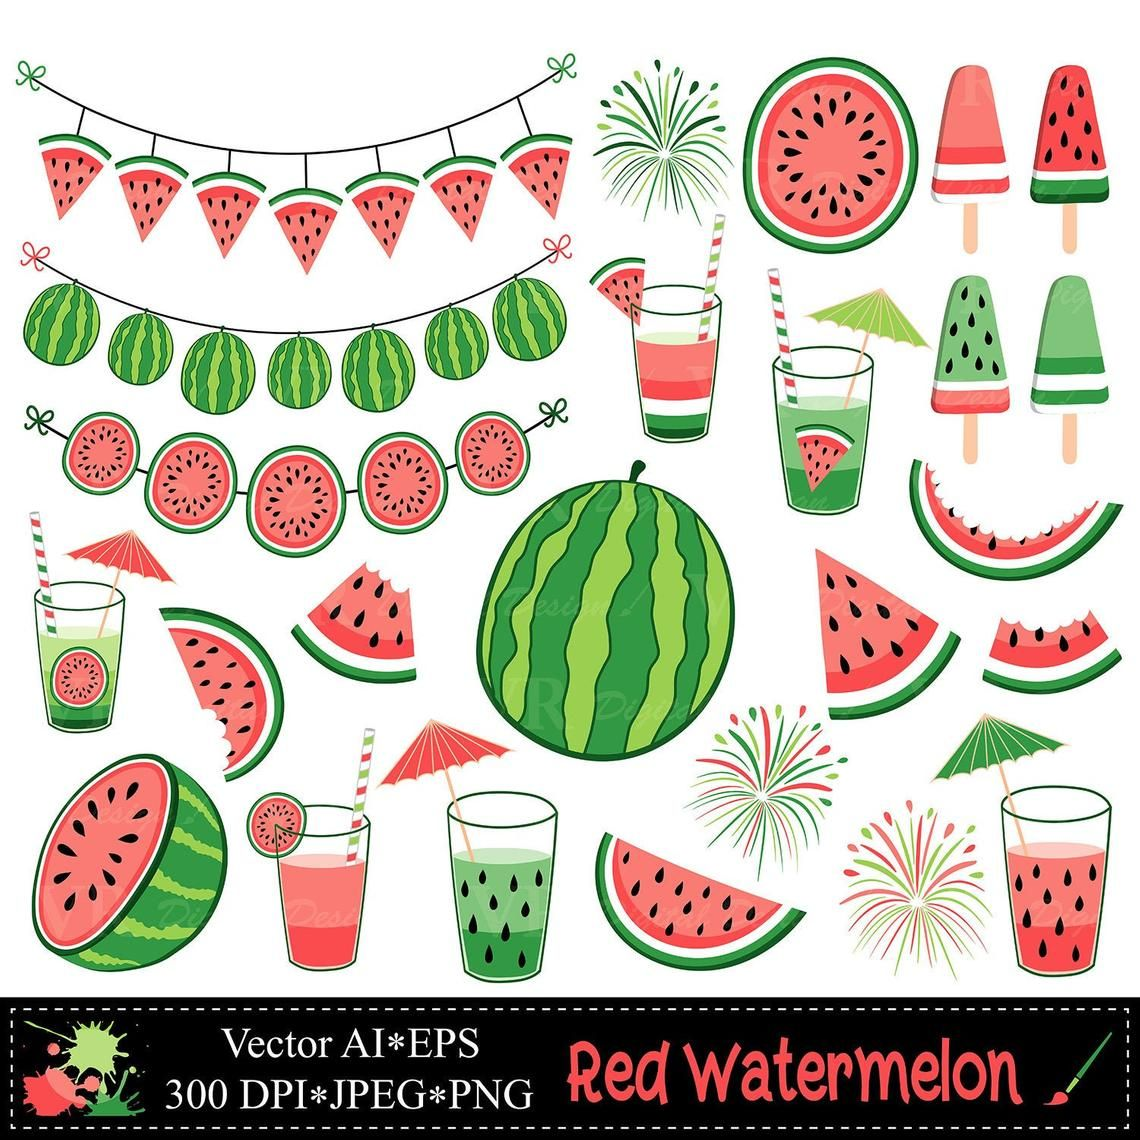 46+ Picture of water melon clipart ideas